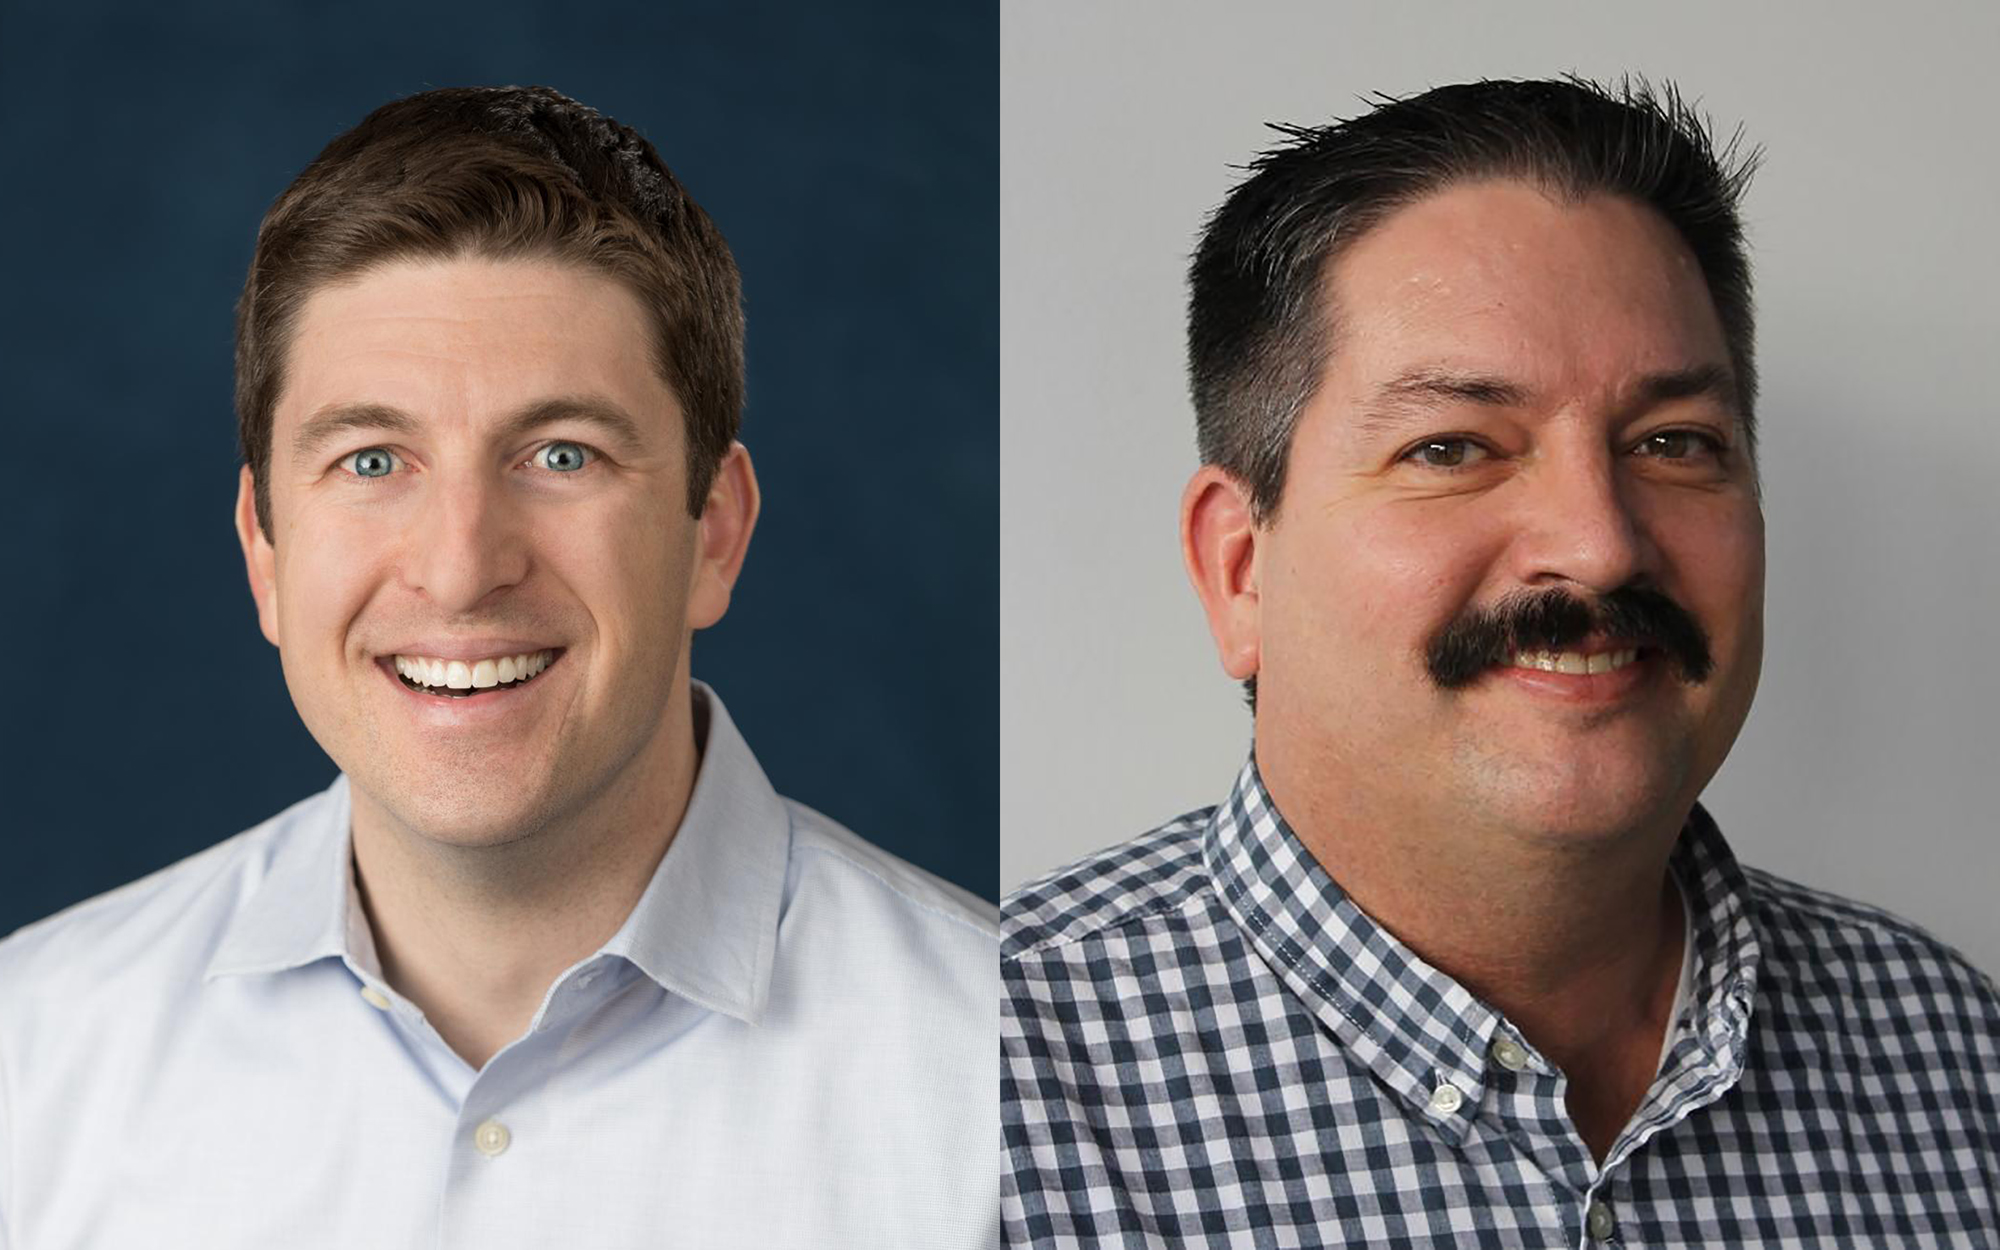 Randy Bryce, Bryan Steil To Face Off In Race To Replace US